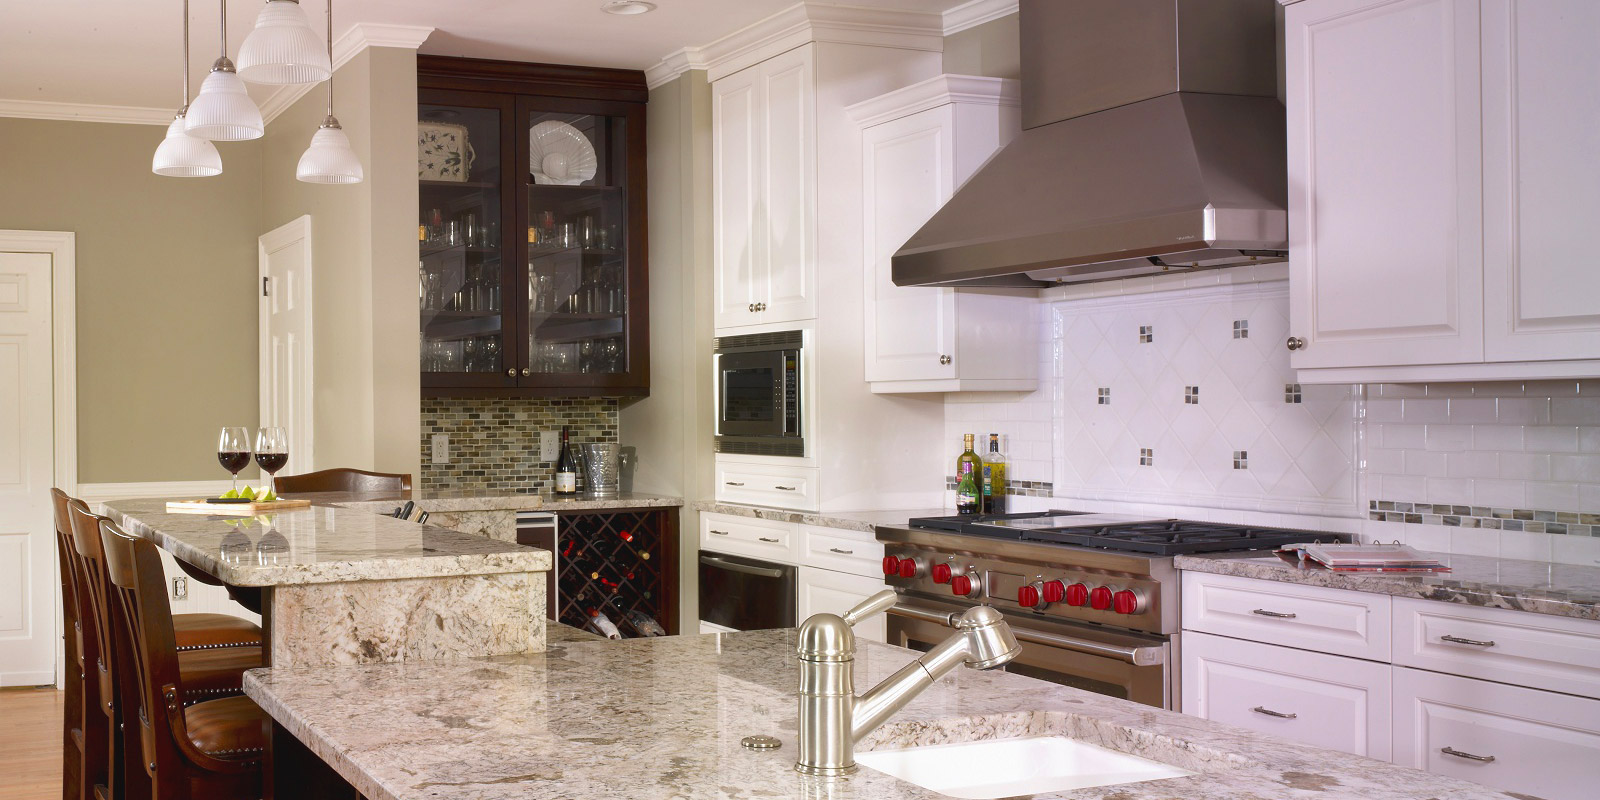 he Kitchen Specialists - a custom kitchen design shop located in ... - ^